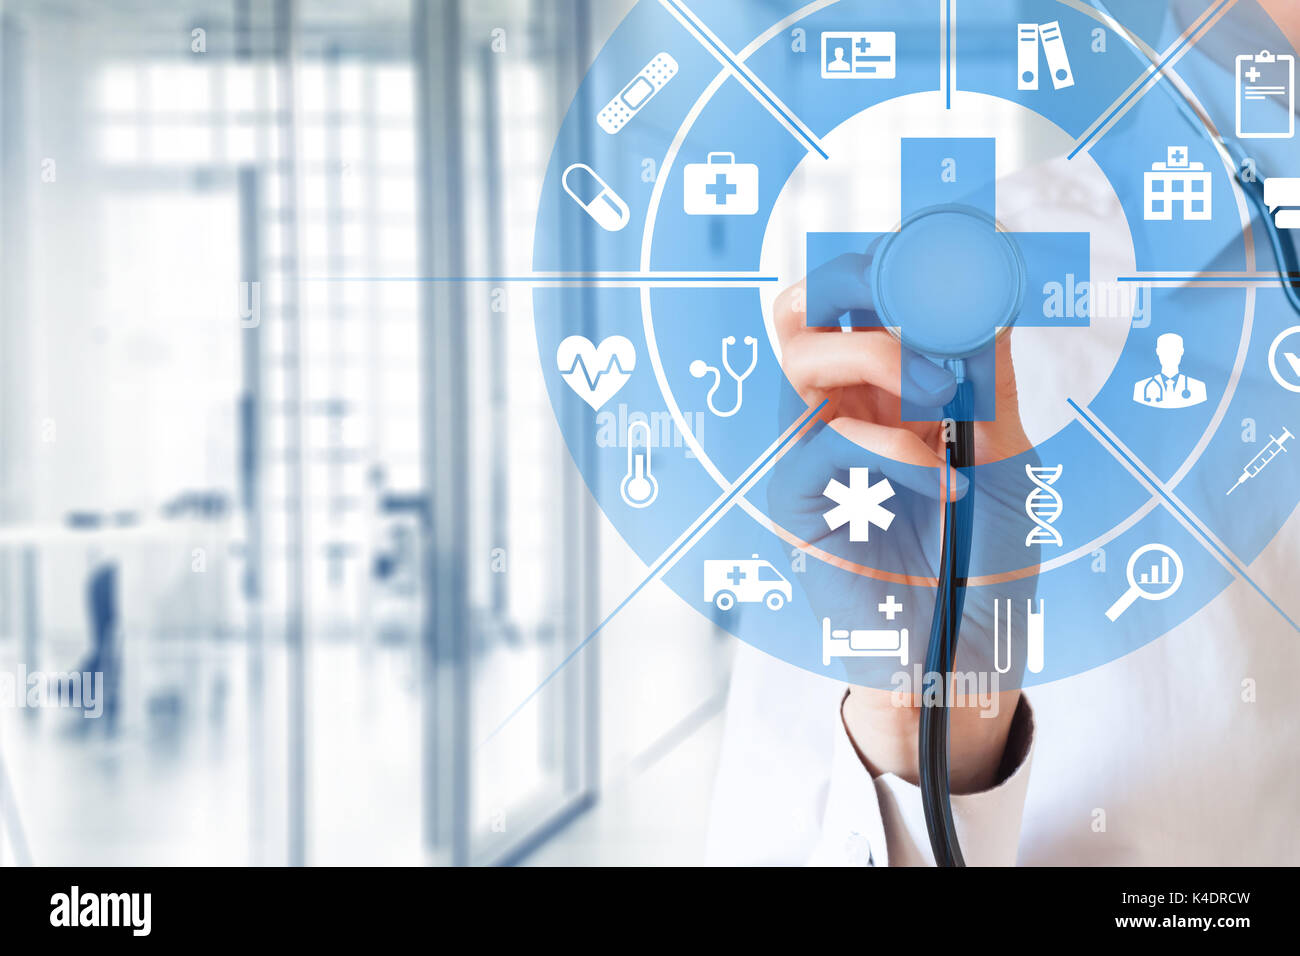 Health care and medical services concept with circular AR interface and female doctor using stethoscope Stock Photo